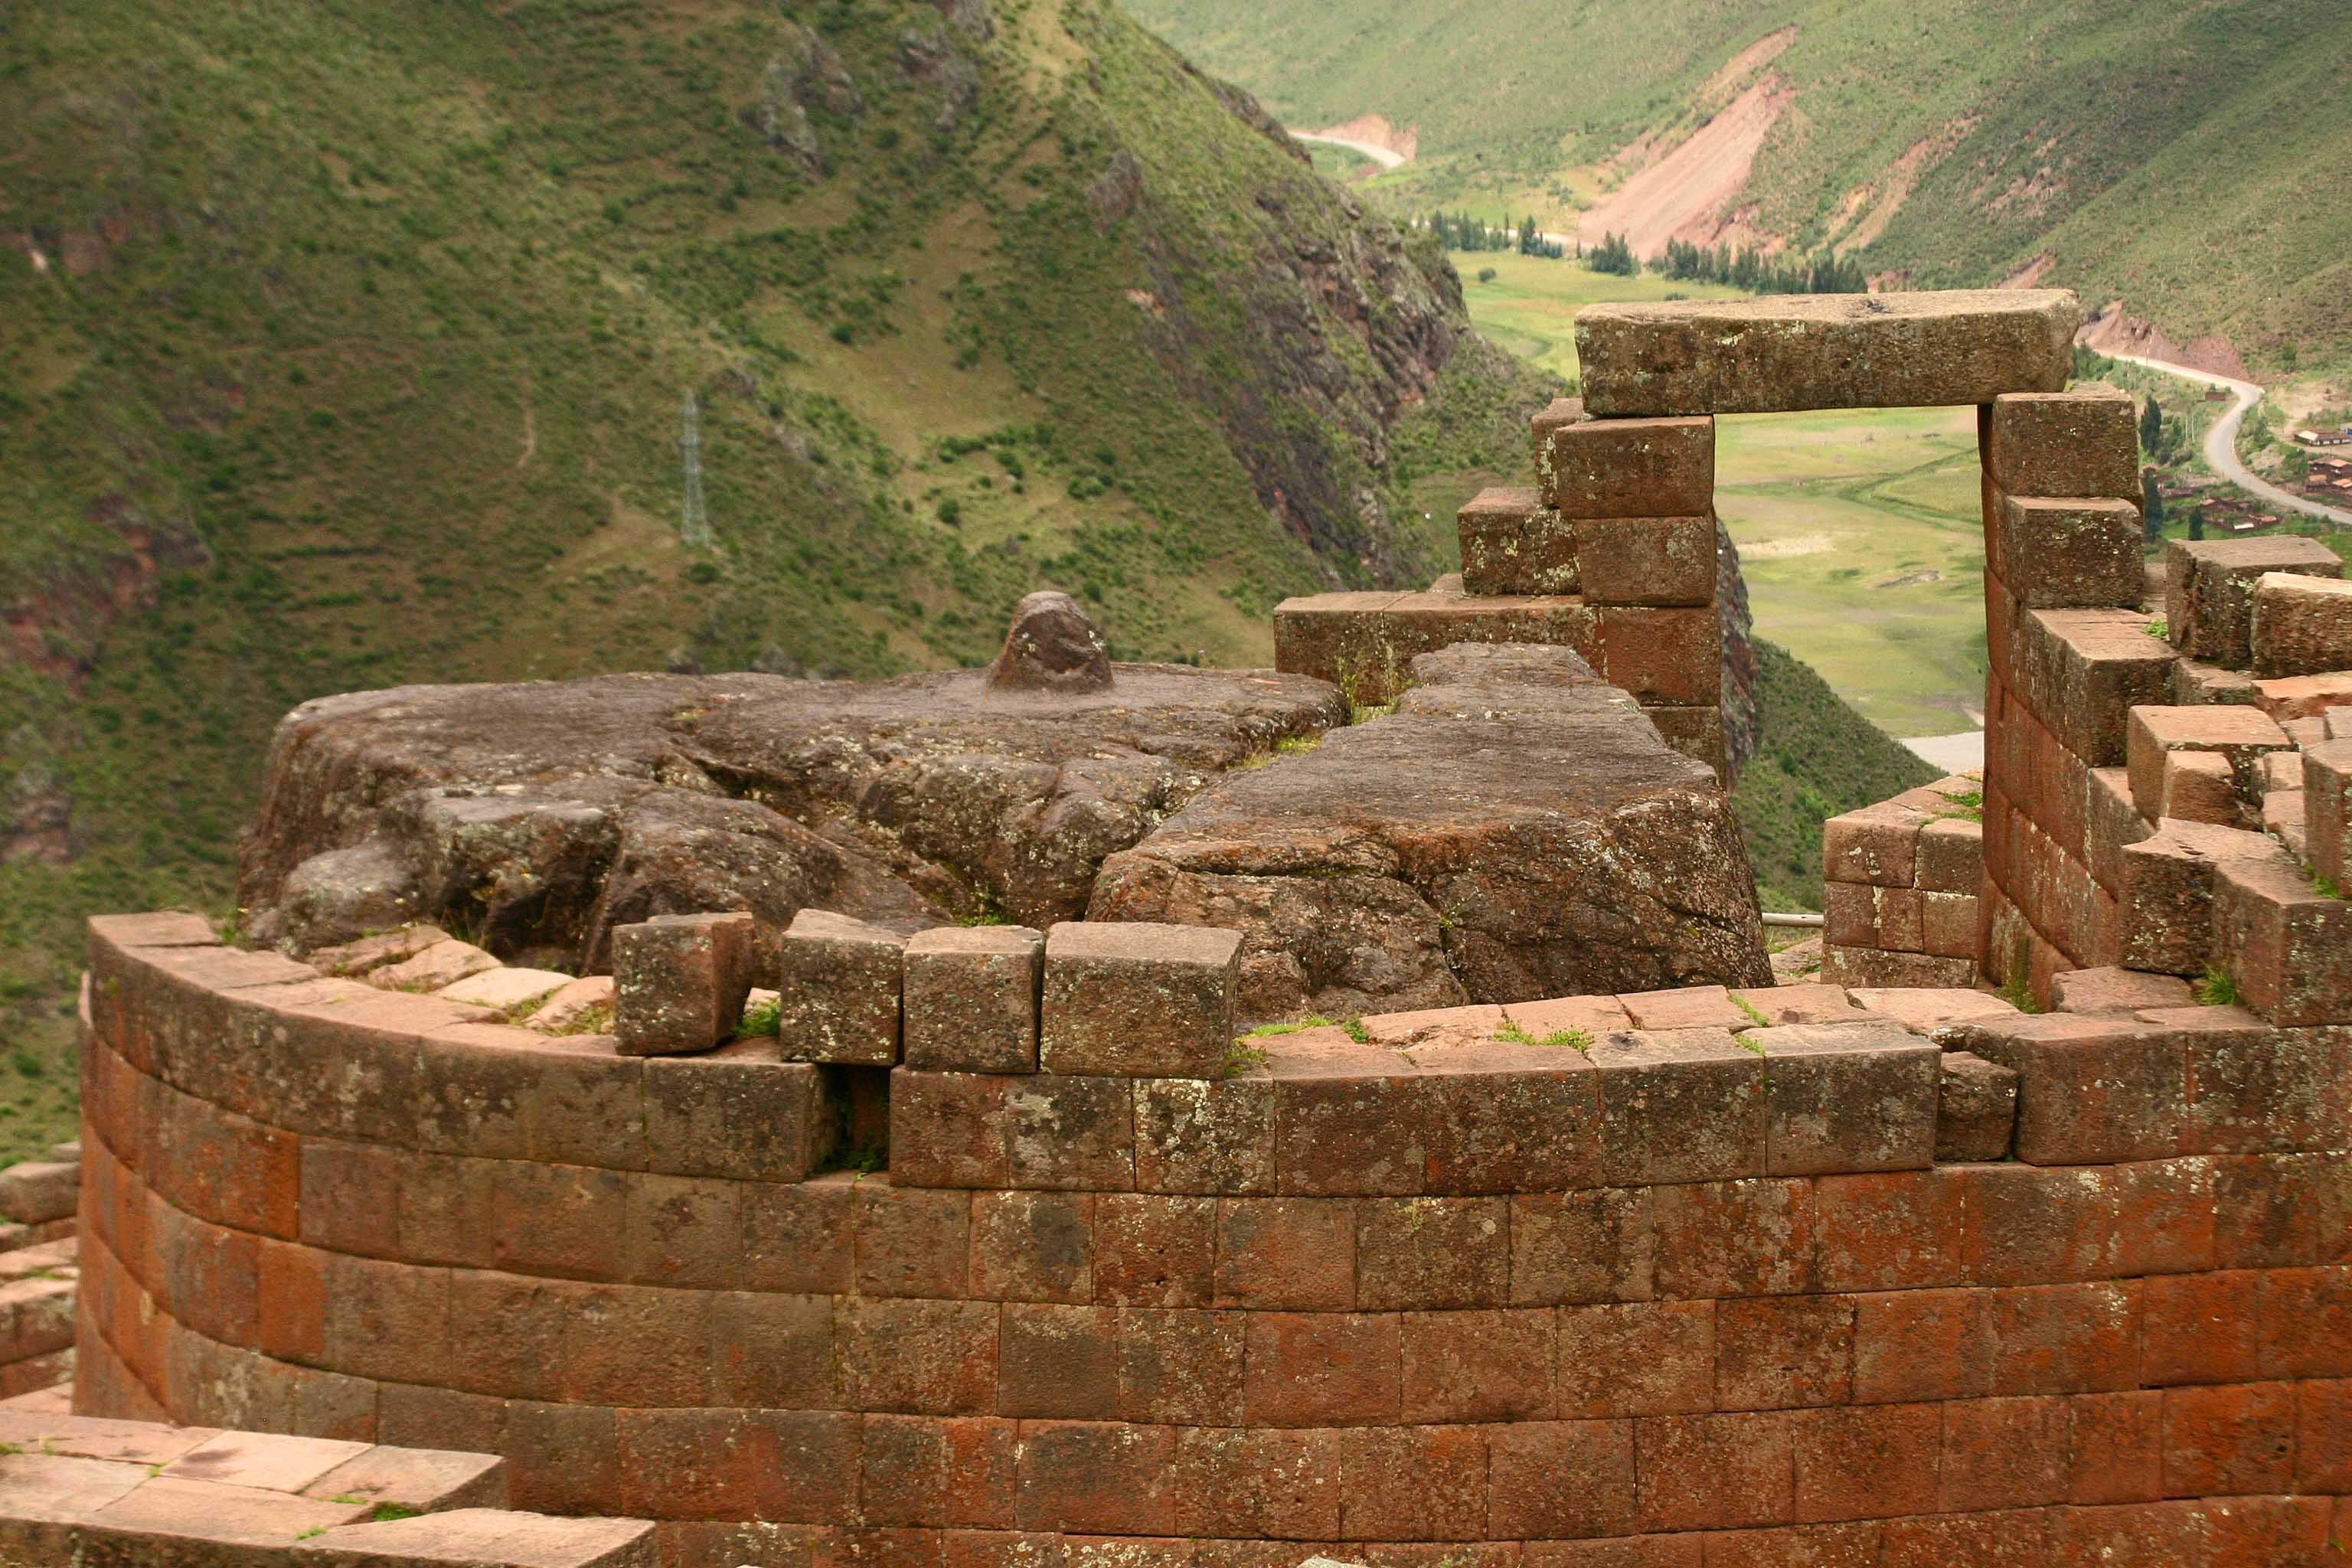 http://www.imagesofanthropology.com/images/Inca_shrine_at_Pisac_Peru_copy.jpg